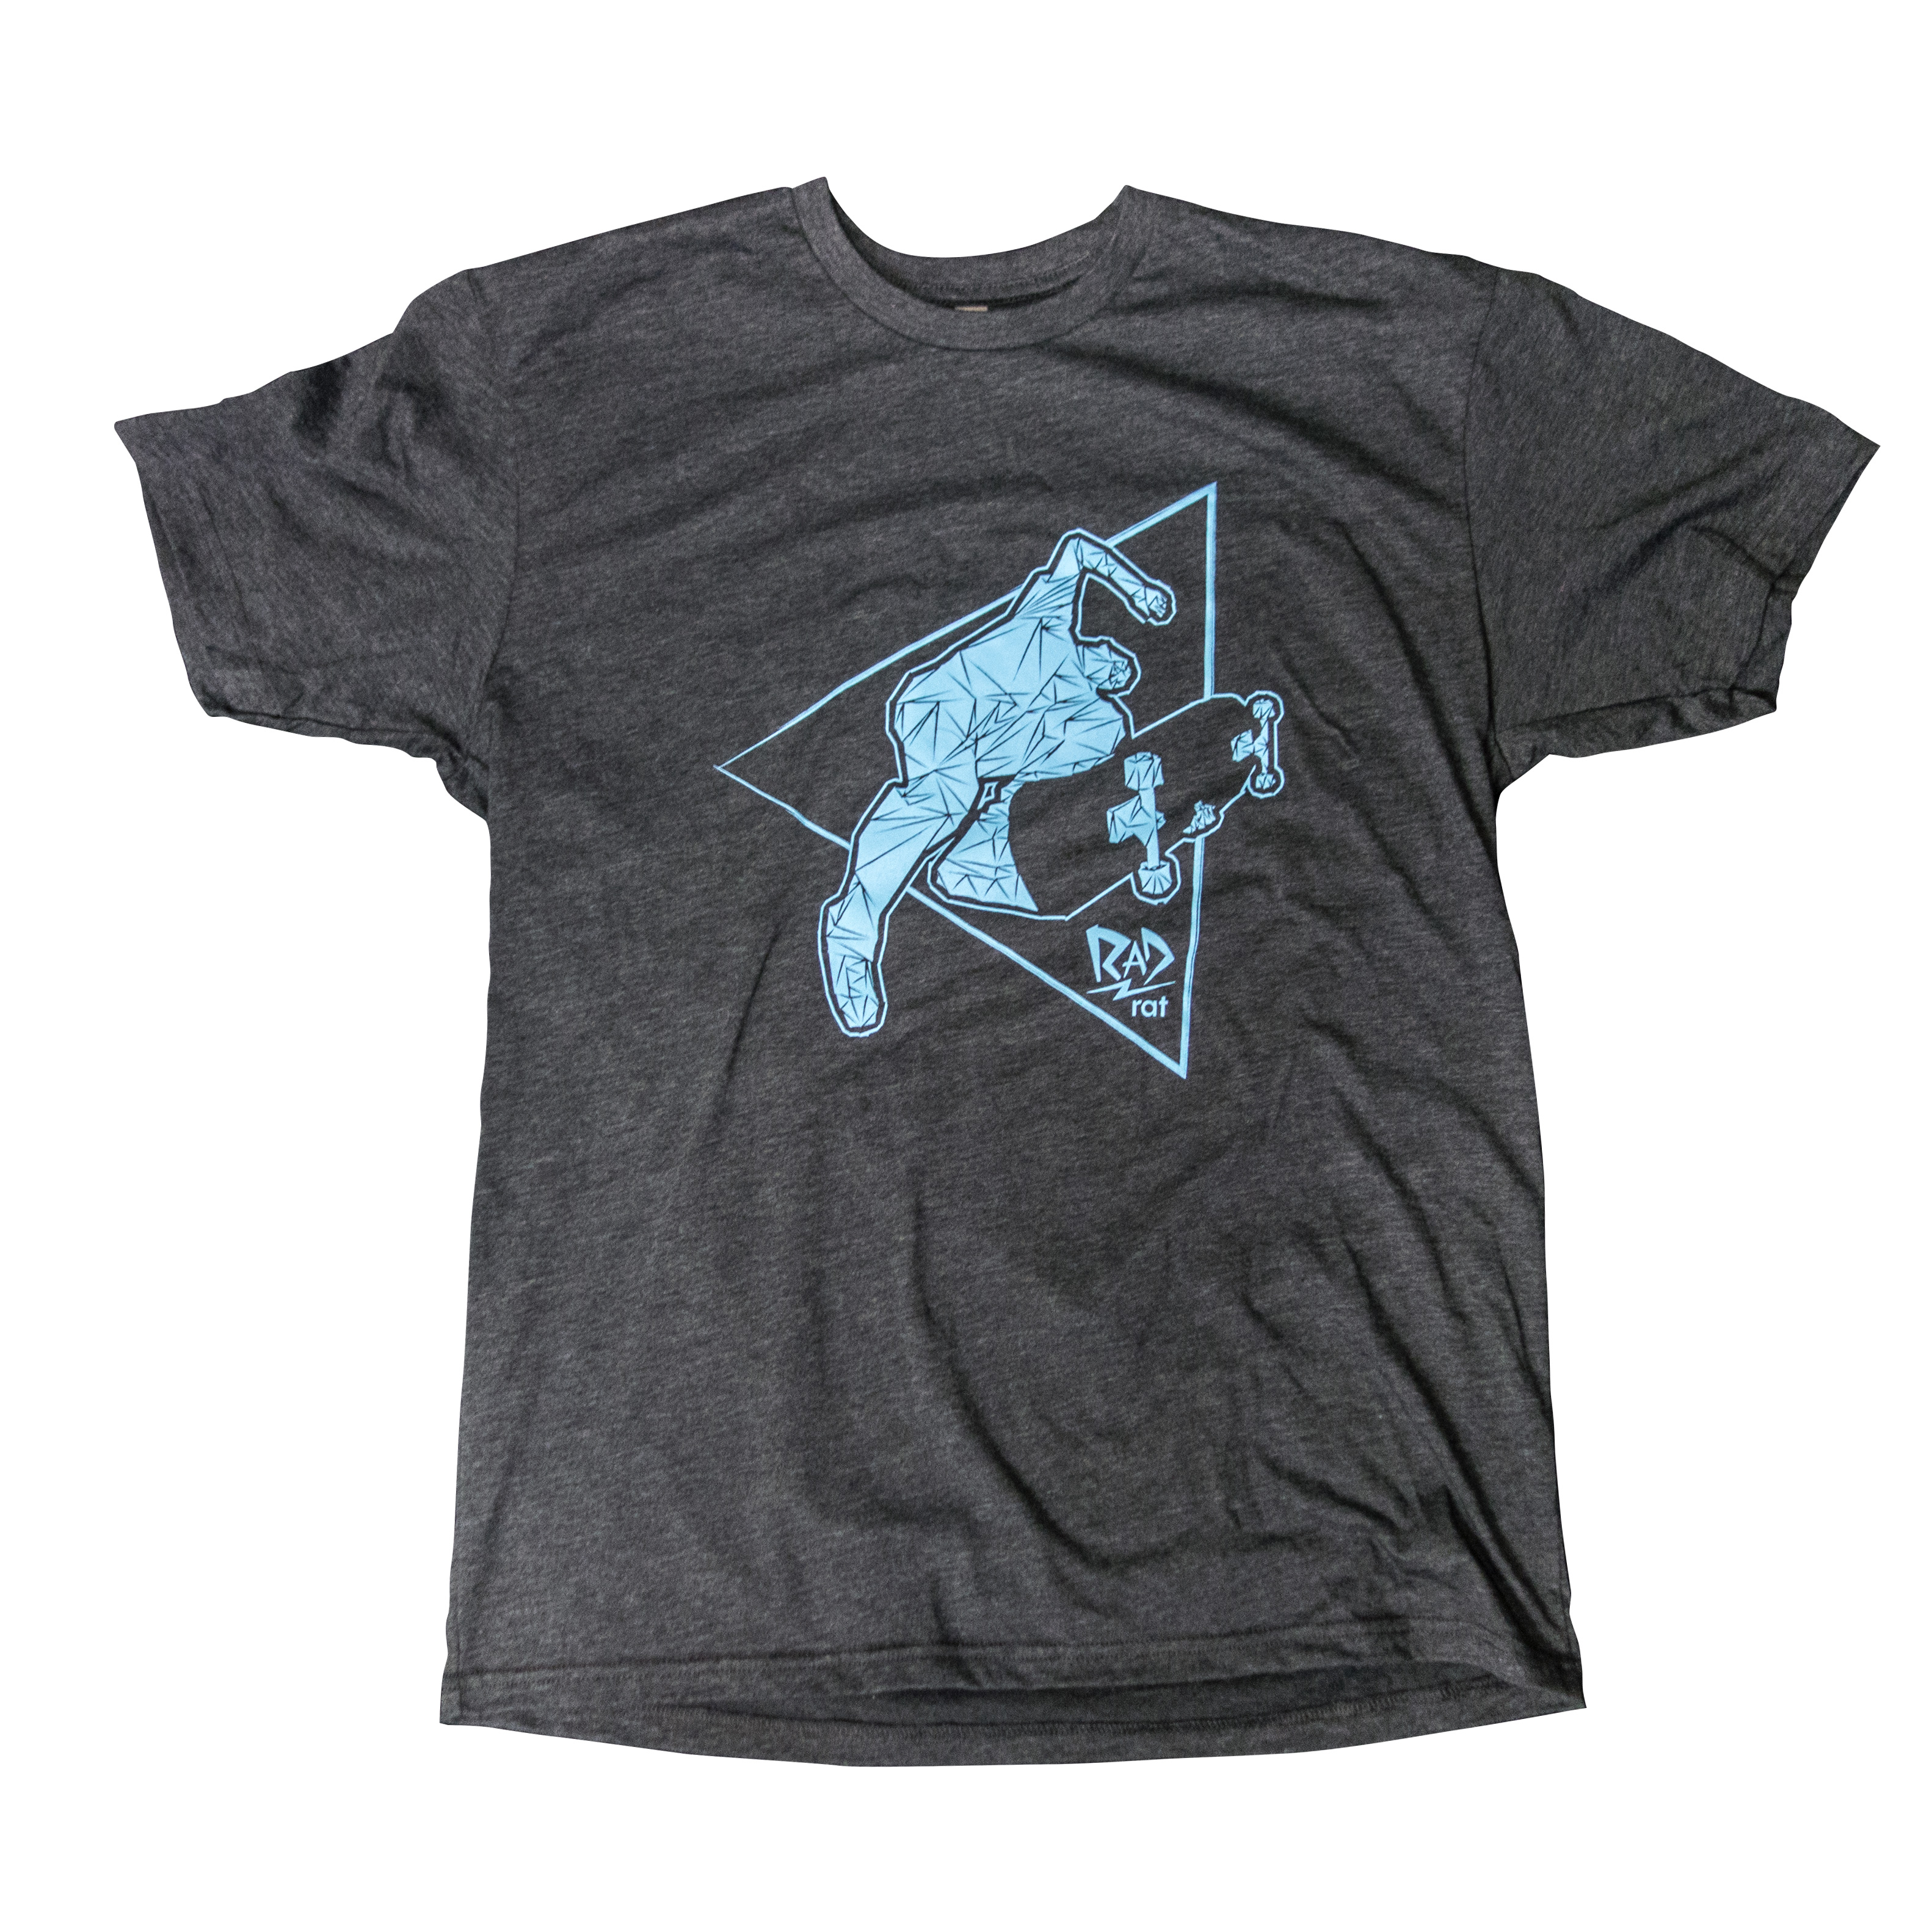 940279c9 You're viewing: Beanplant T-Shirt (Unisex) – Screenprinted Blue on Charcoal  $19.99